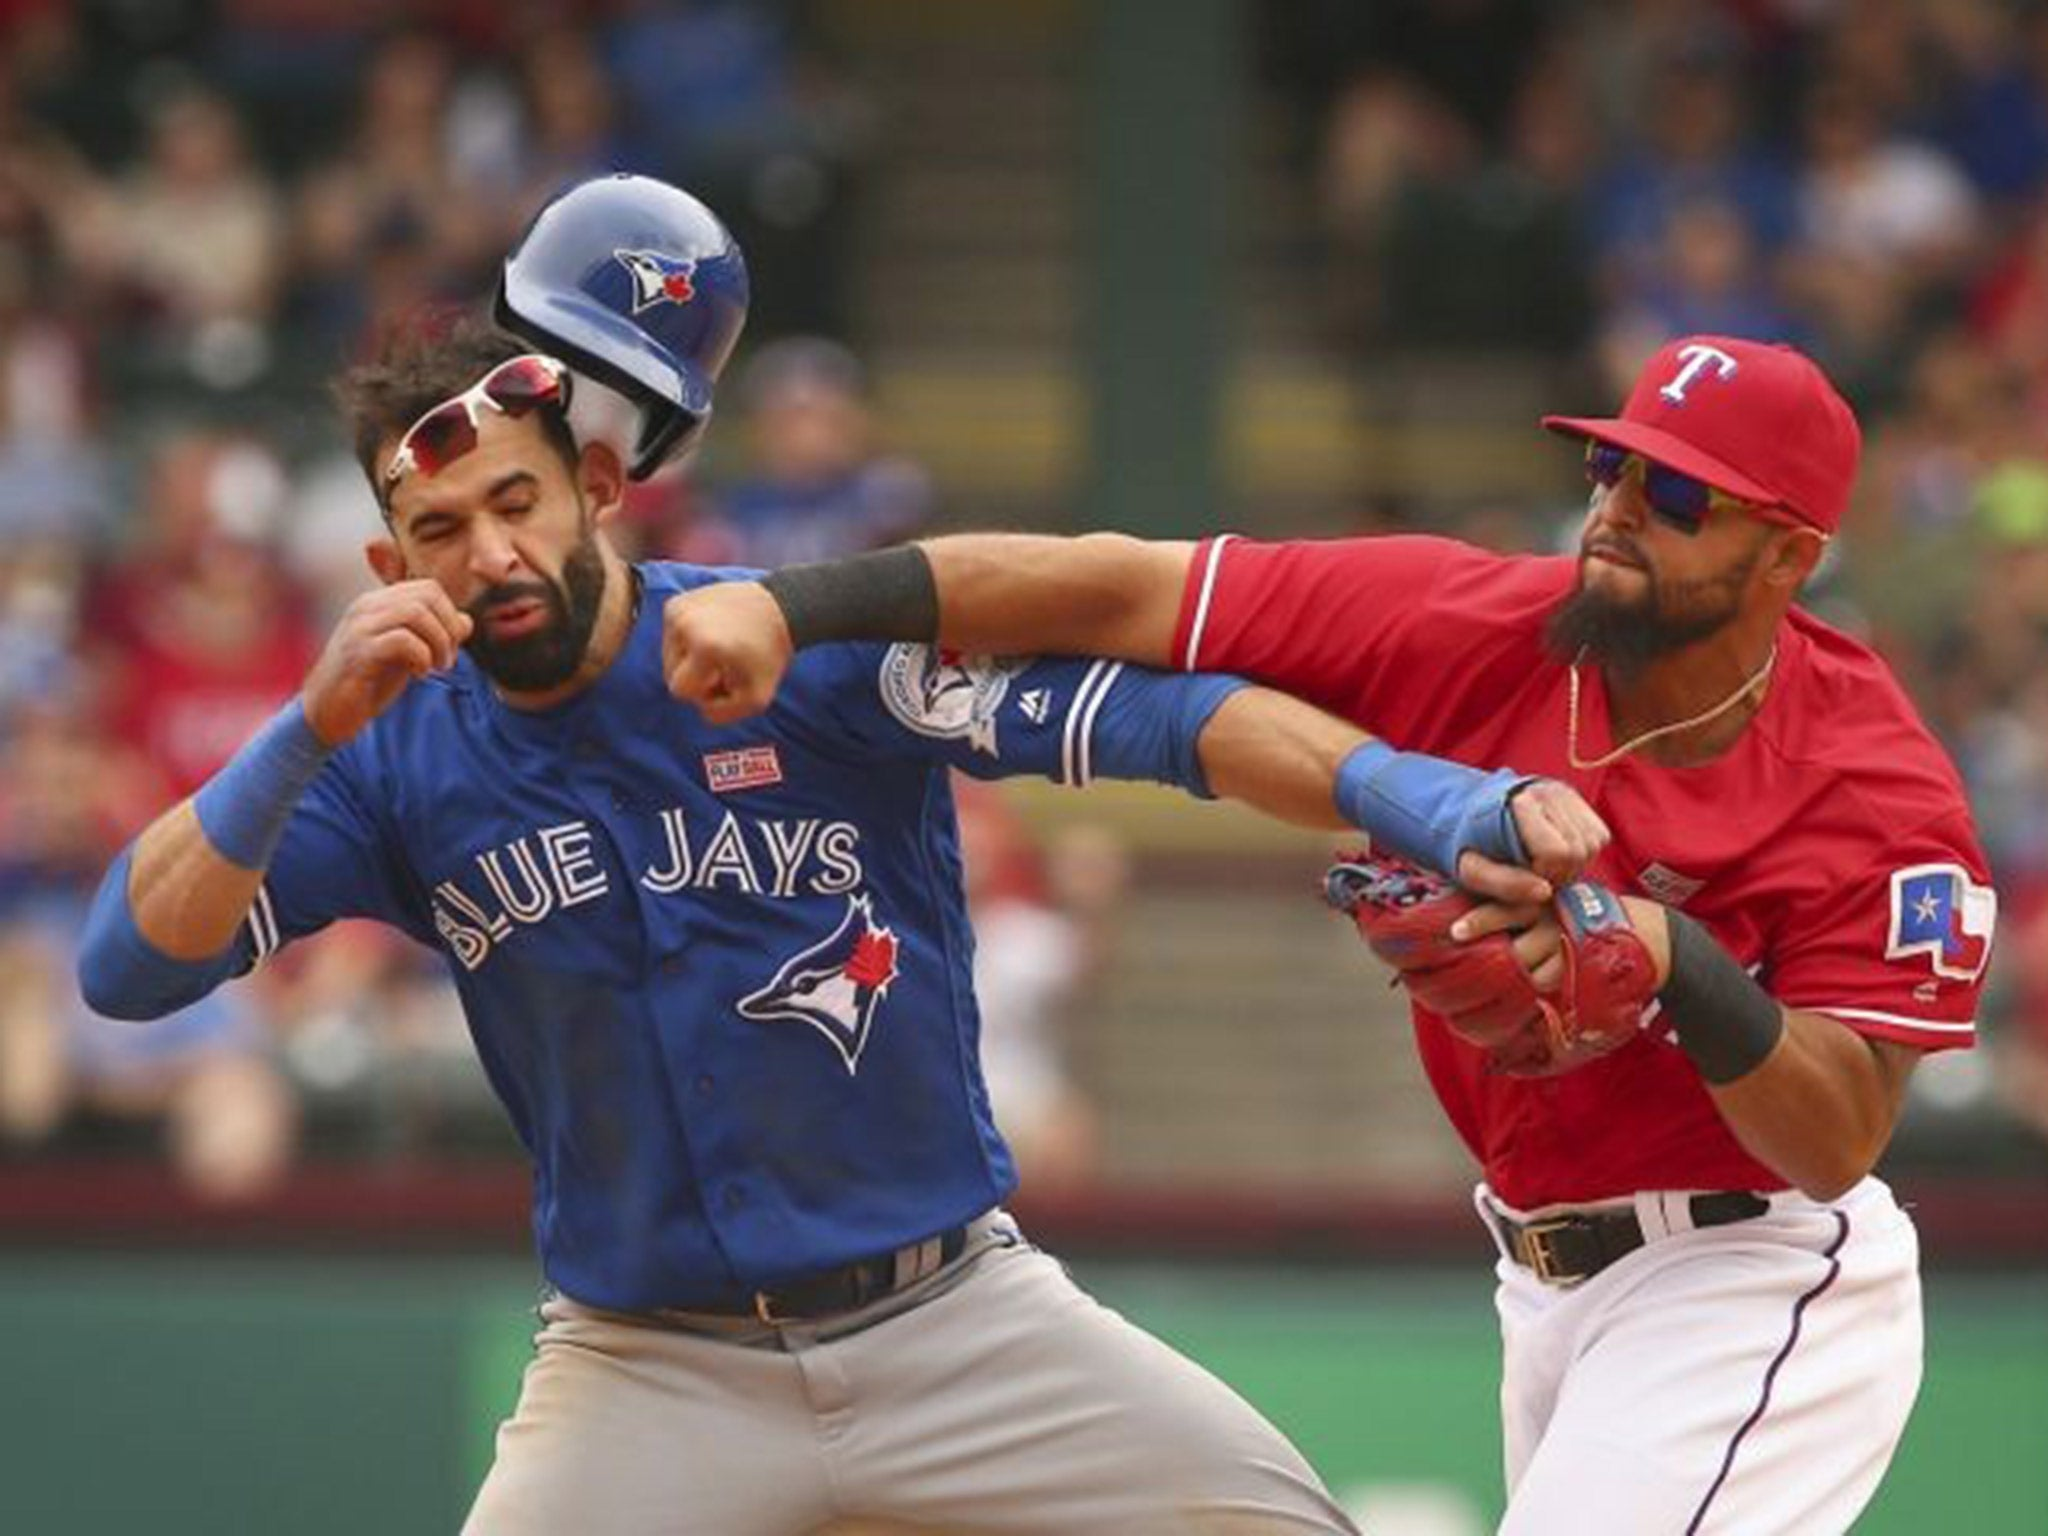 Texas Rangers vs Toronto Blue Jays descends into chaos after Rougned Odor lands huge punch on Jose Bautista | MLB | Sport | The Independent